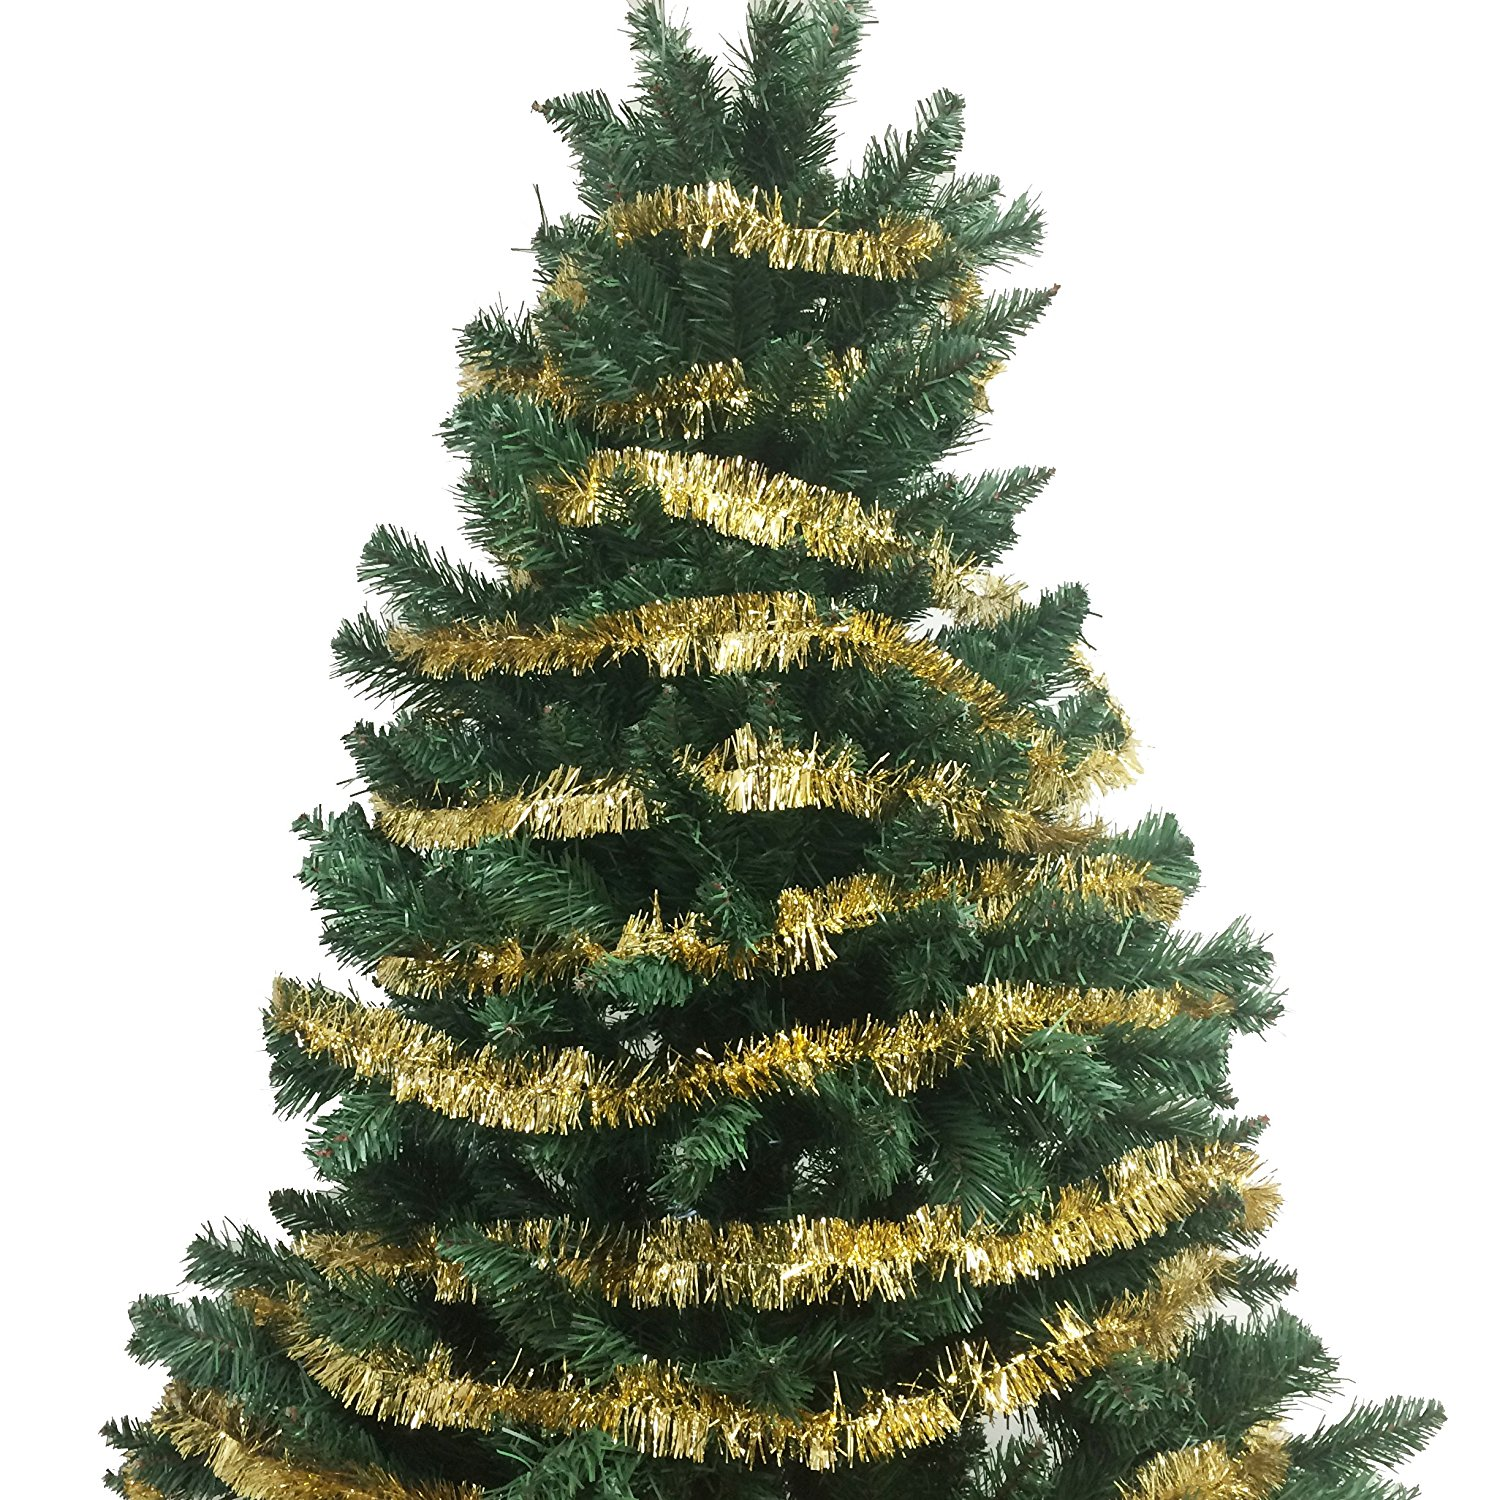 100 Ft Commercial Length Christmas Garland Classic Christmas Decorations Gold